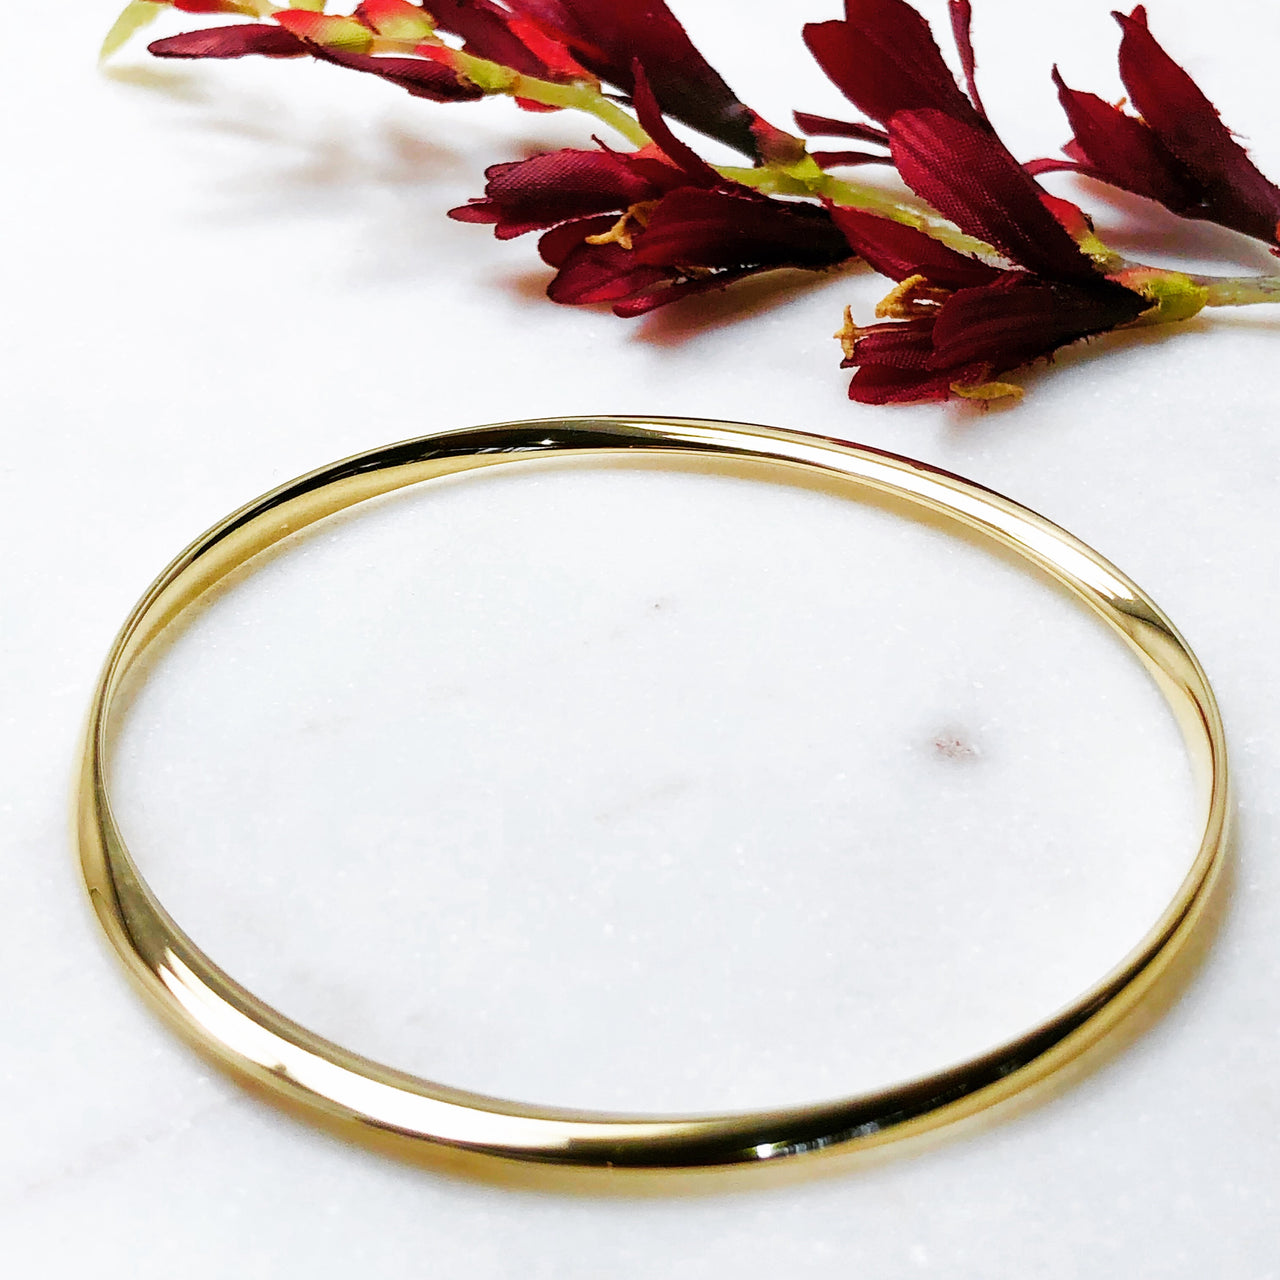 14K Yellow Gold Bangle Bracelet.